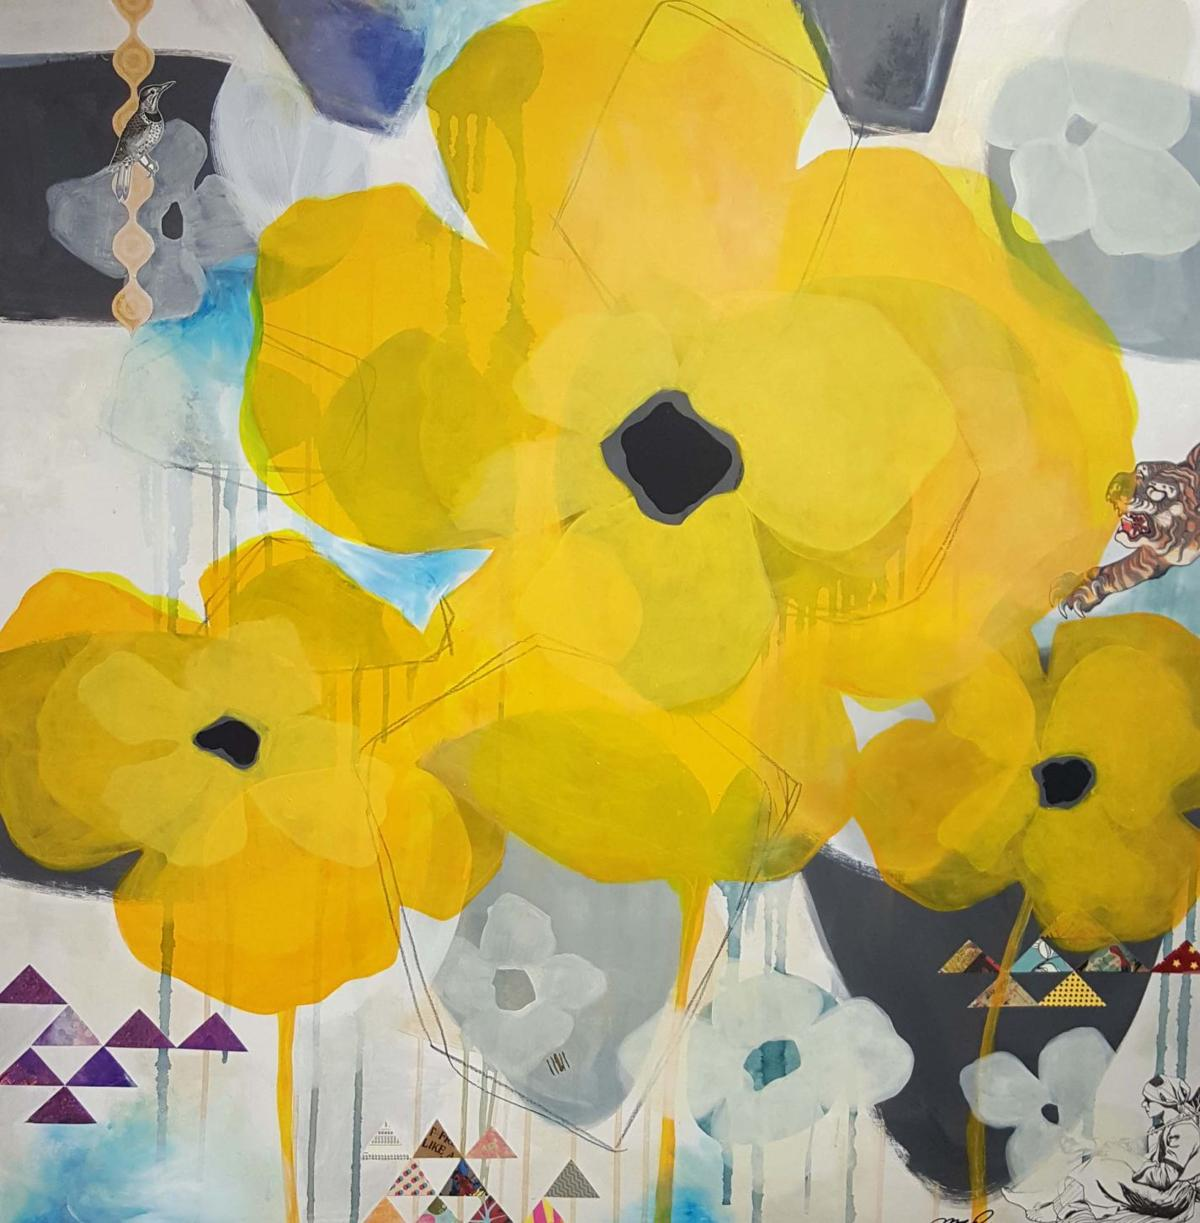 64th Parallel Juried Exhibition